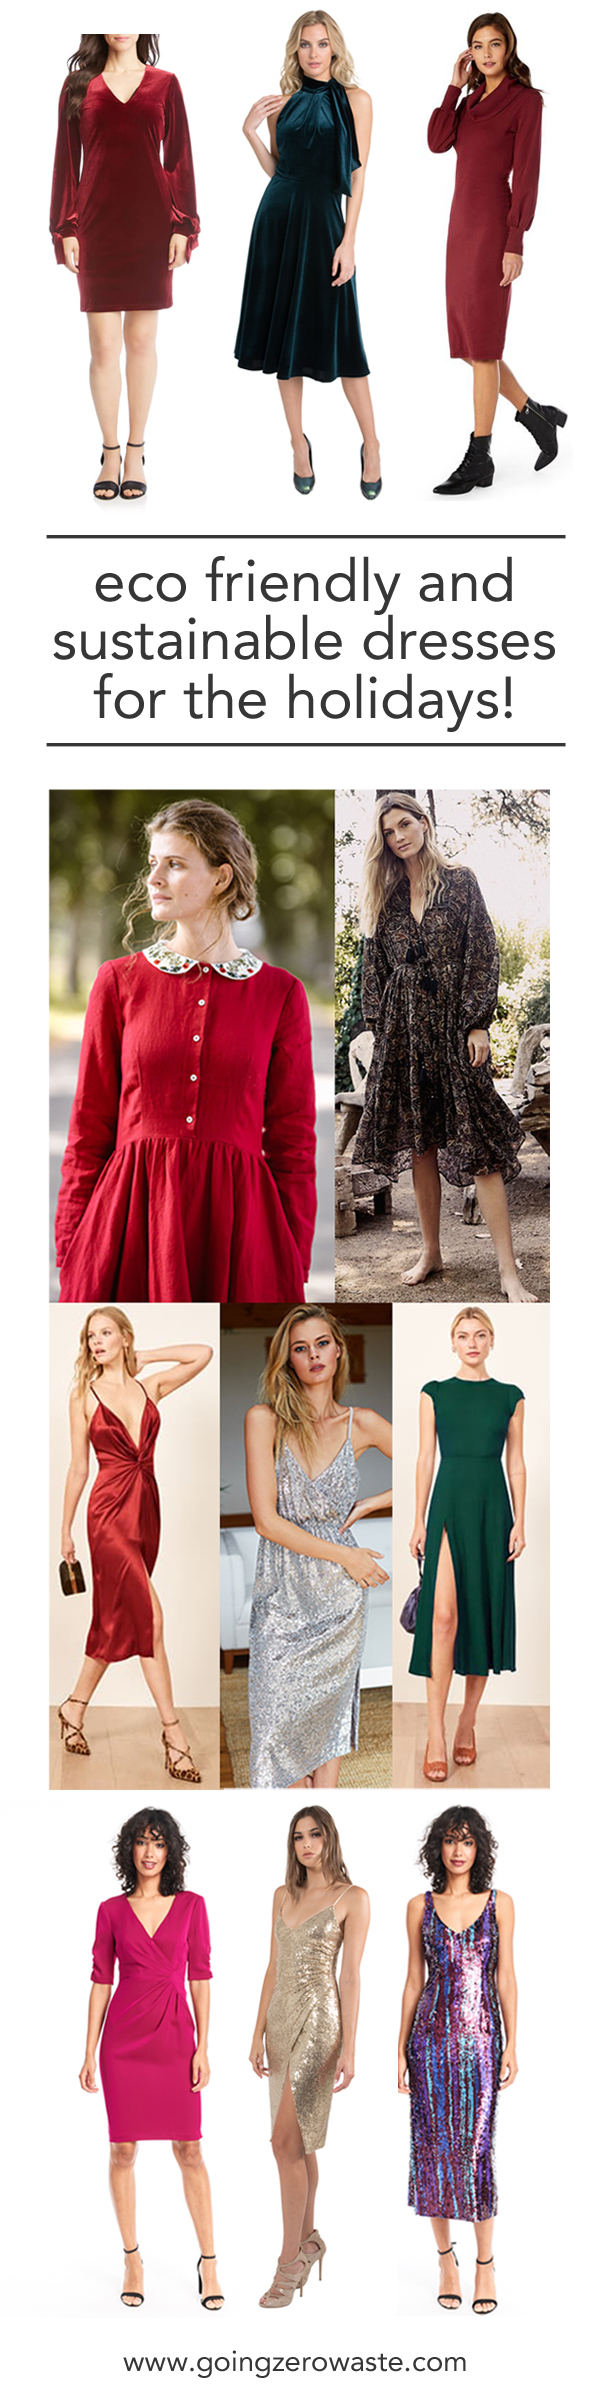 1ddbd96cb615 Lust worthy sustainable and ethical holiday dresses from  www.goingzerowaste.com #sustainable #